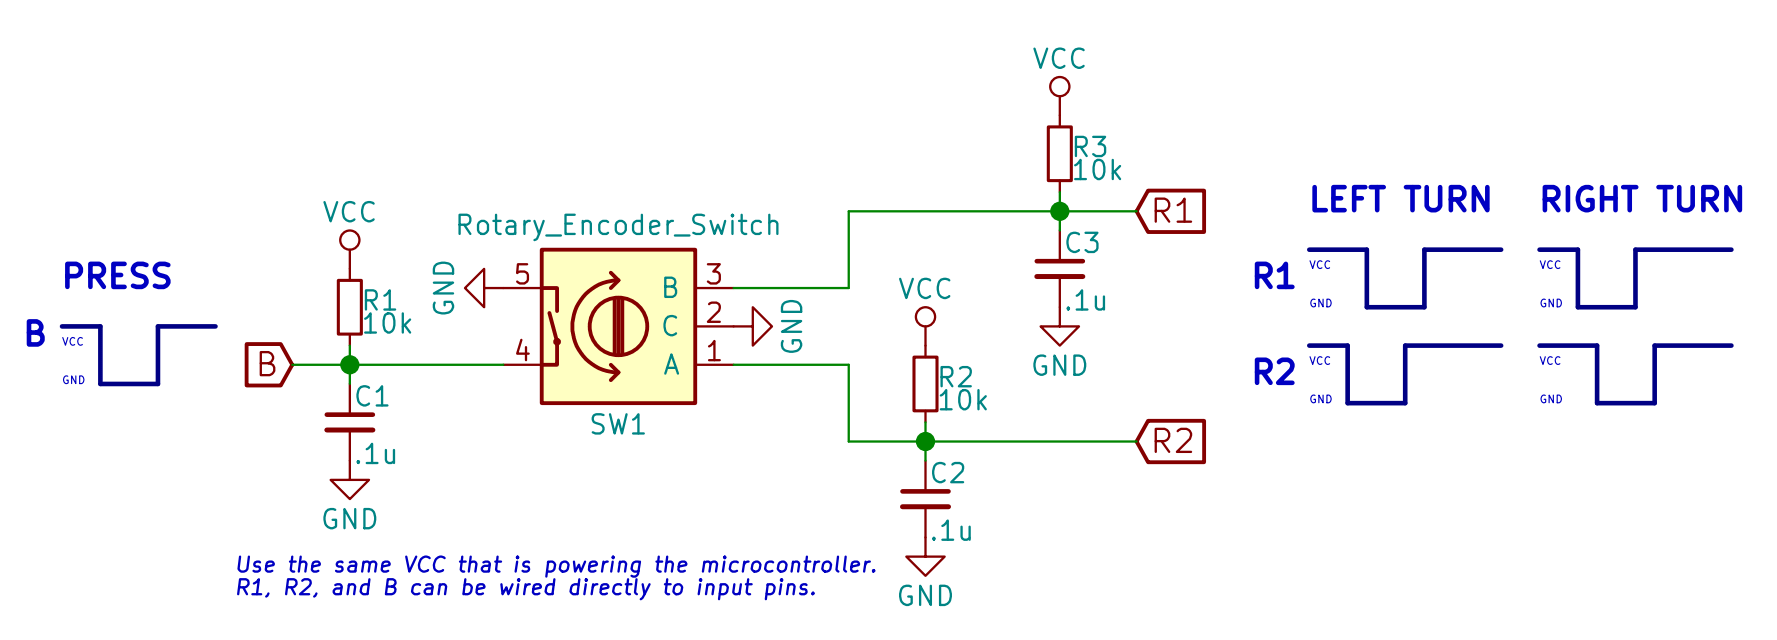 hight resolution of avr rotary encoder circuit diagram wiring diagrams second 1 rotary encoder 3 pins 6